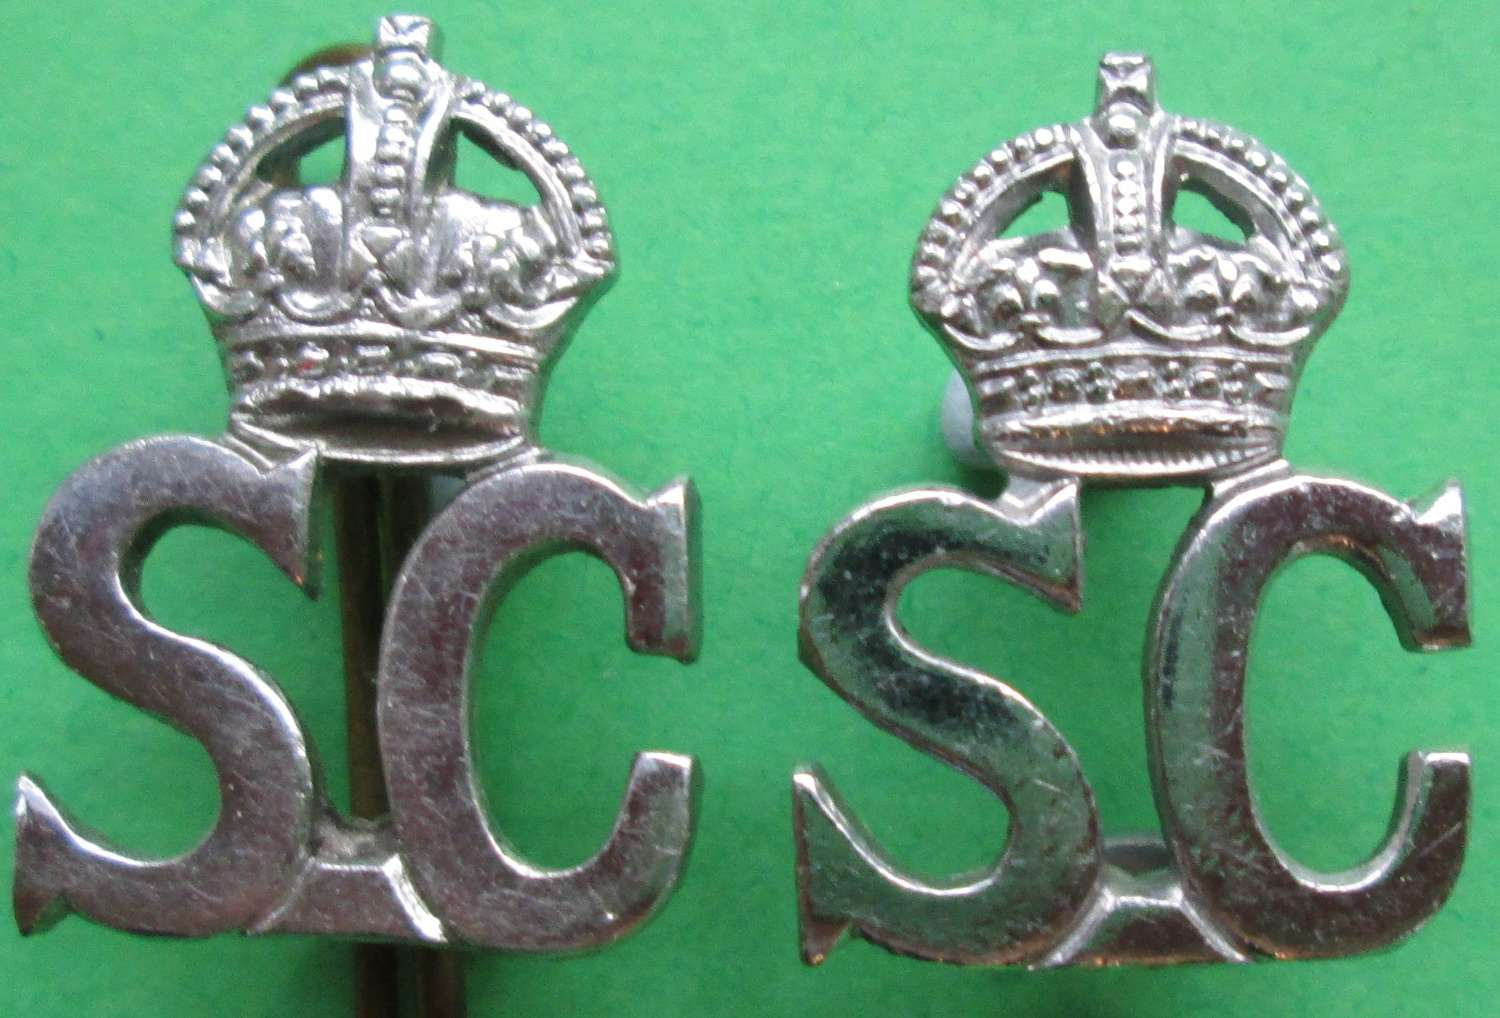 A PAIR OF THE KINGS CROWN PRE 1952 SPECIAL CONSTABULARY COLLAR DOGS